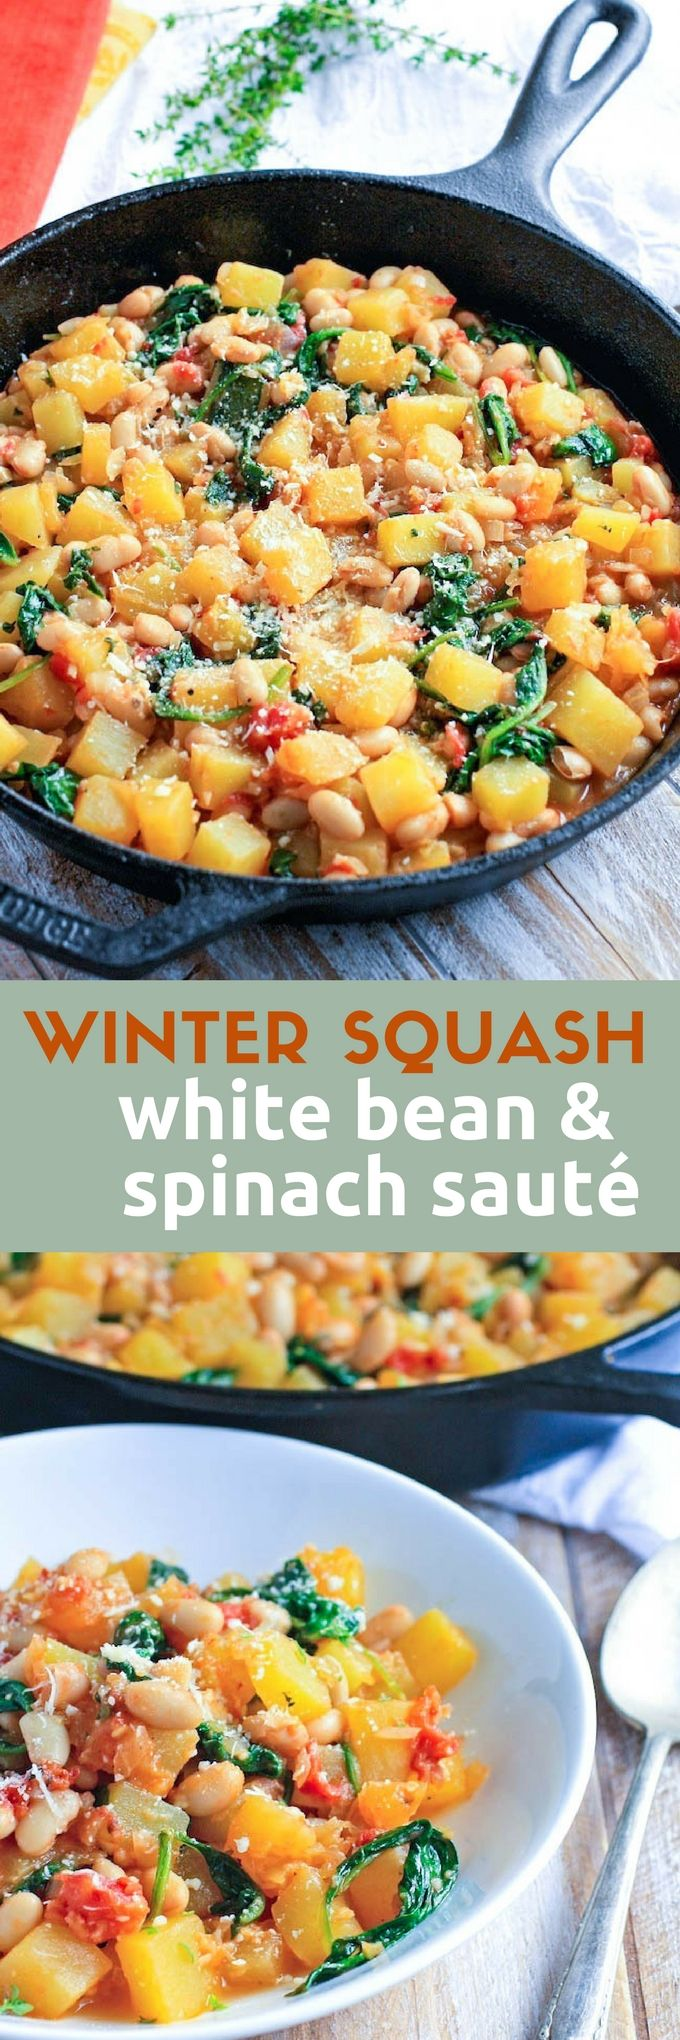 Winter Squash, White Bean & Spinach Sauté is a tasty meal perfect on a cold night. This winter squash dish is ideal for a Meatless Monday meal.